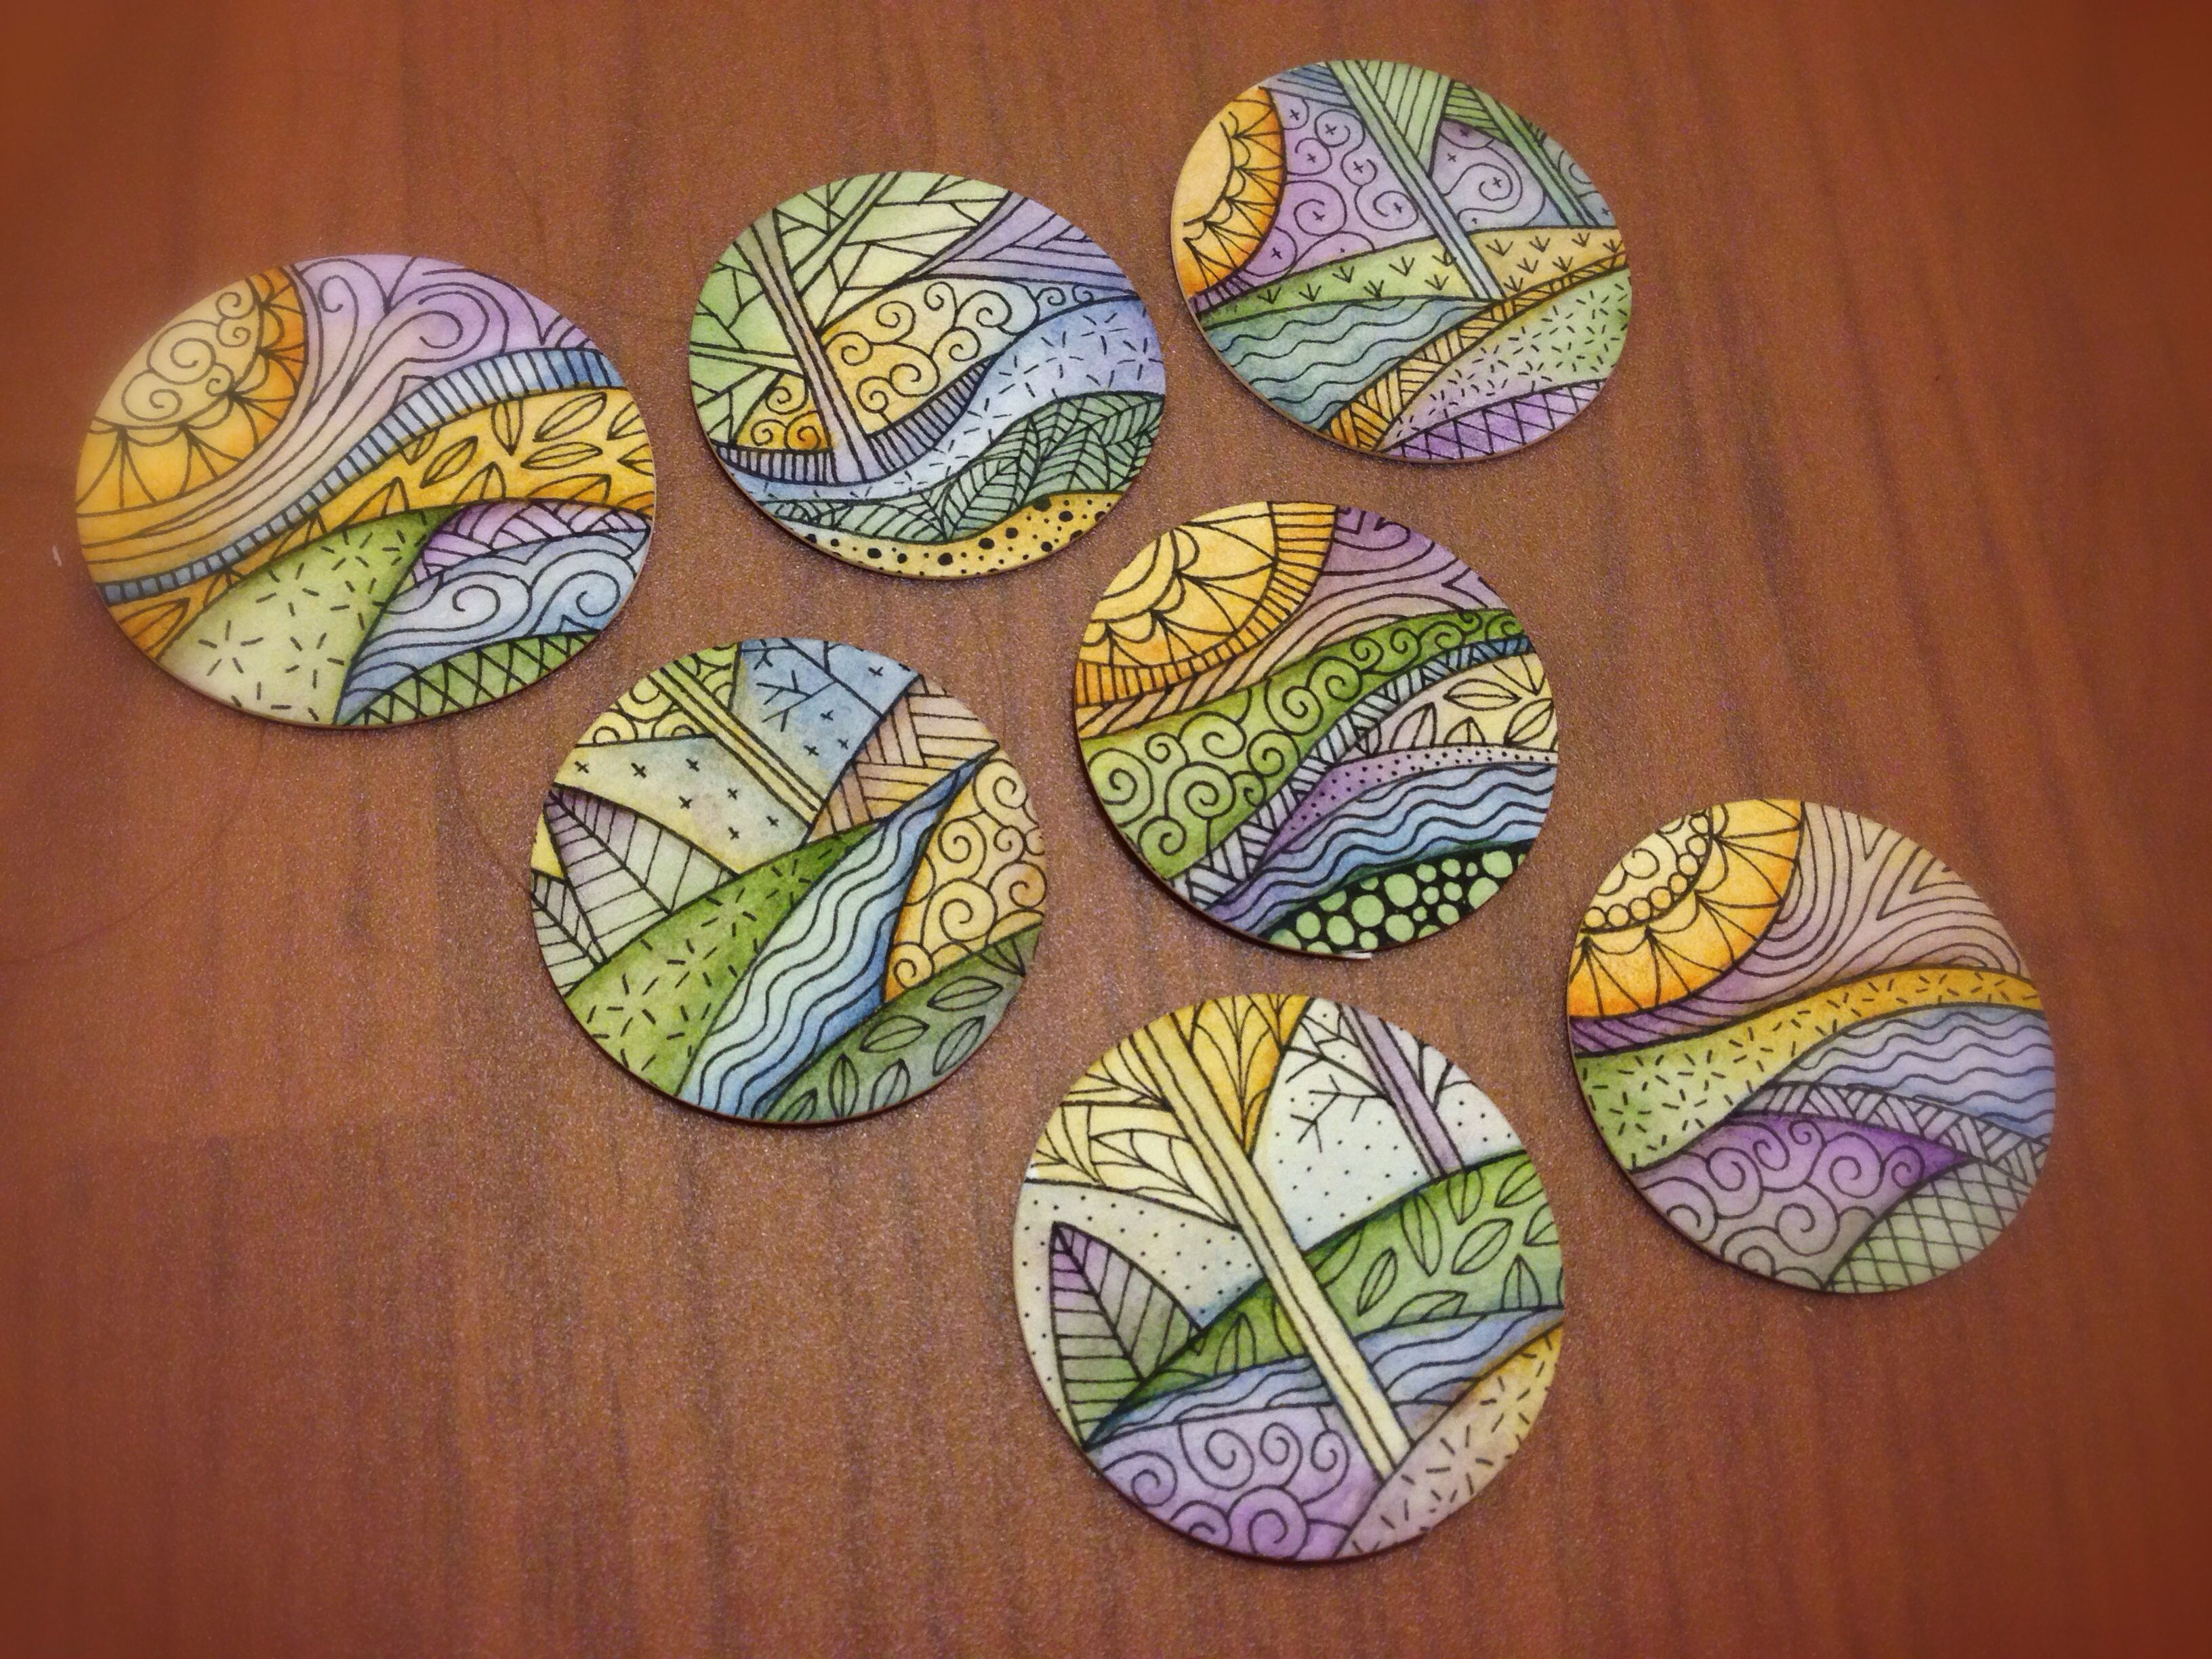 Tiny one inch zentangle/doodle watercolor landscapes - inspiration only photo